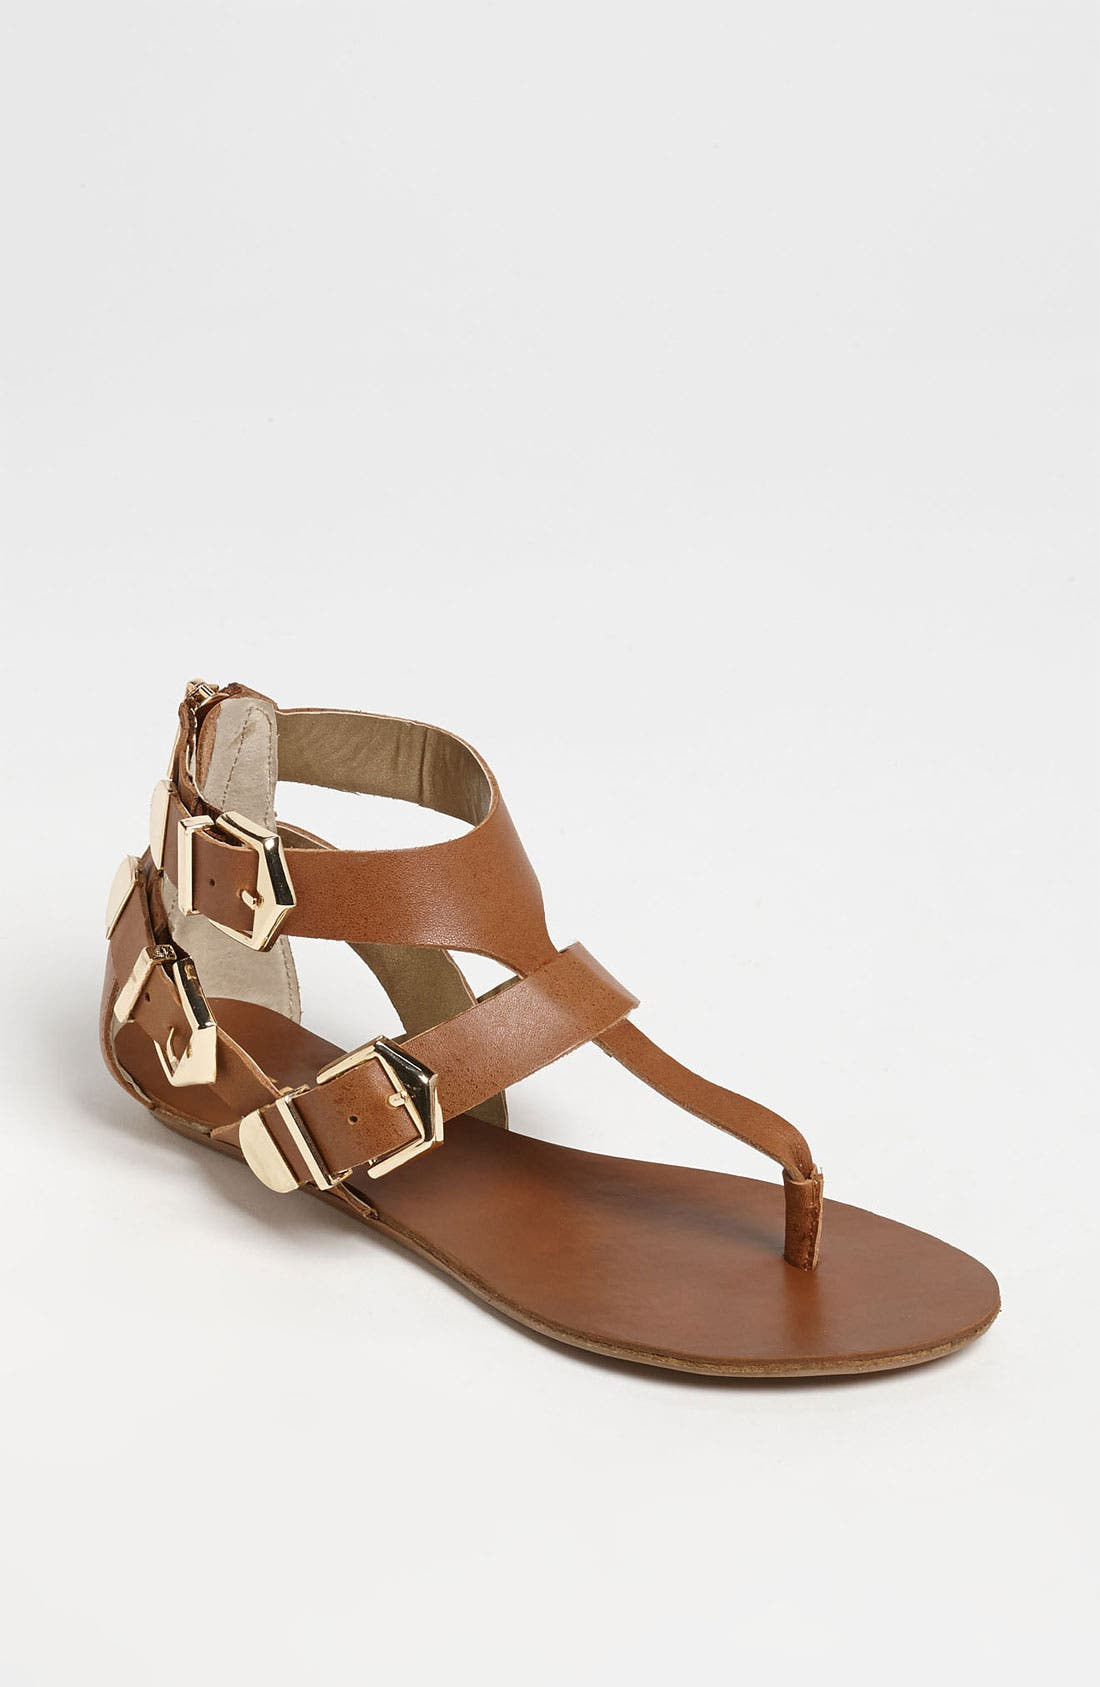 Alternate Image 1 Selected - REPORT 'Jamieson' Sandal